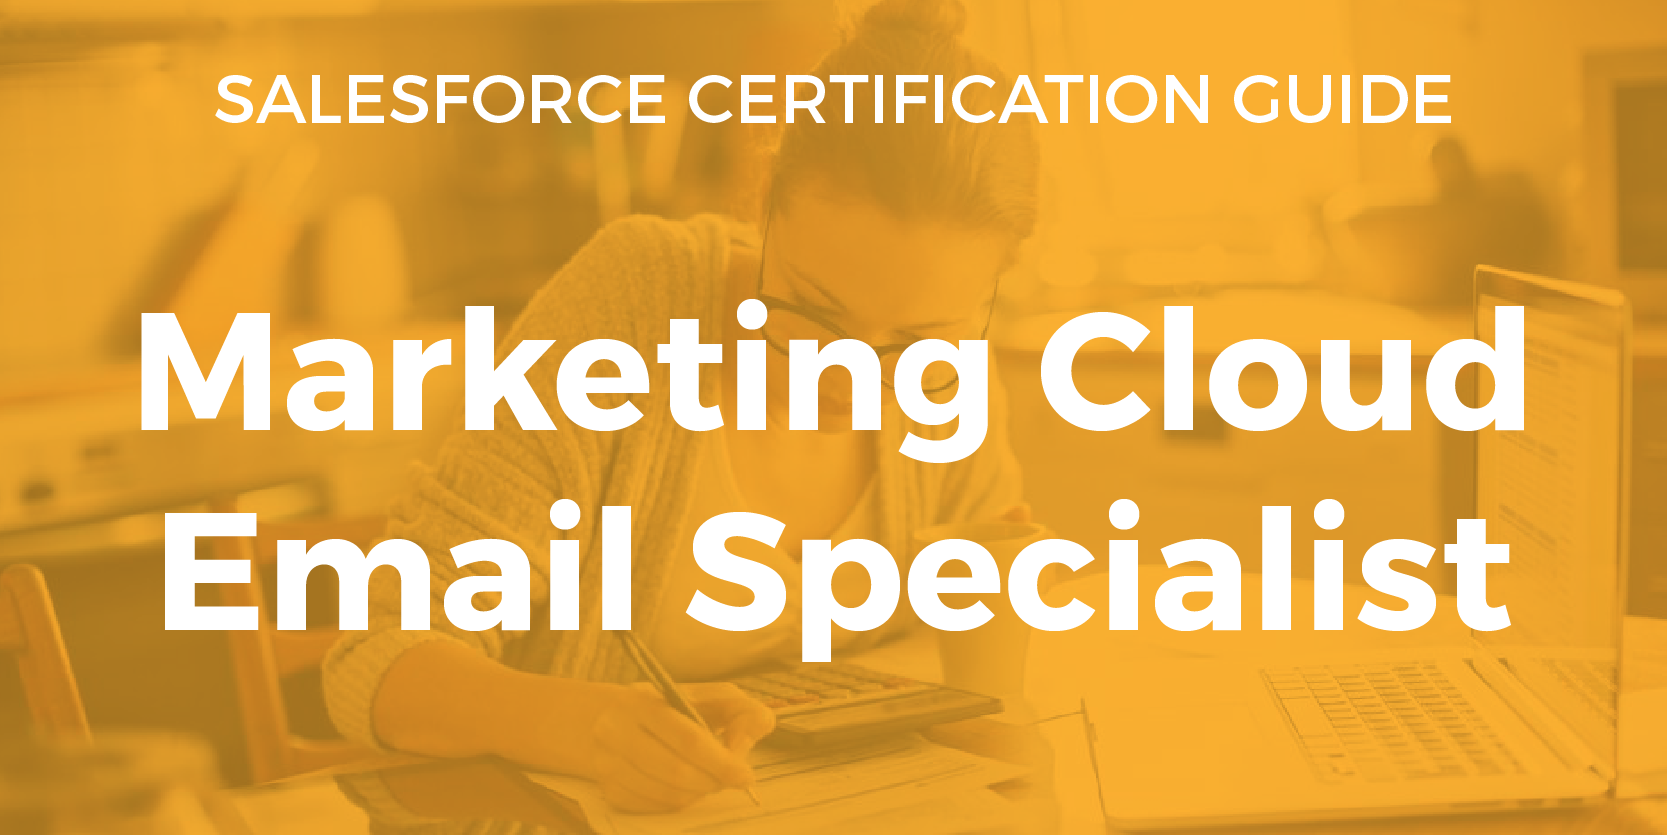 Marketing Cloud Email Specialist Resource Guide Salesforce Chris